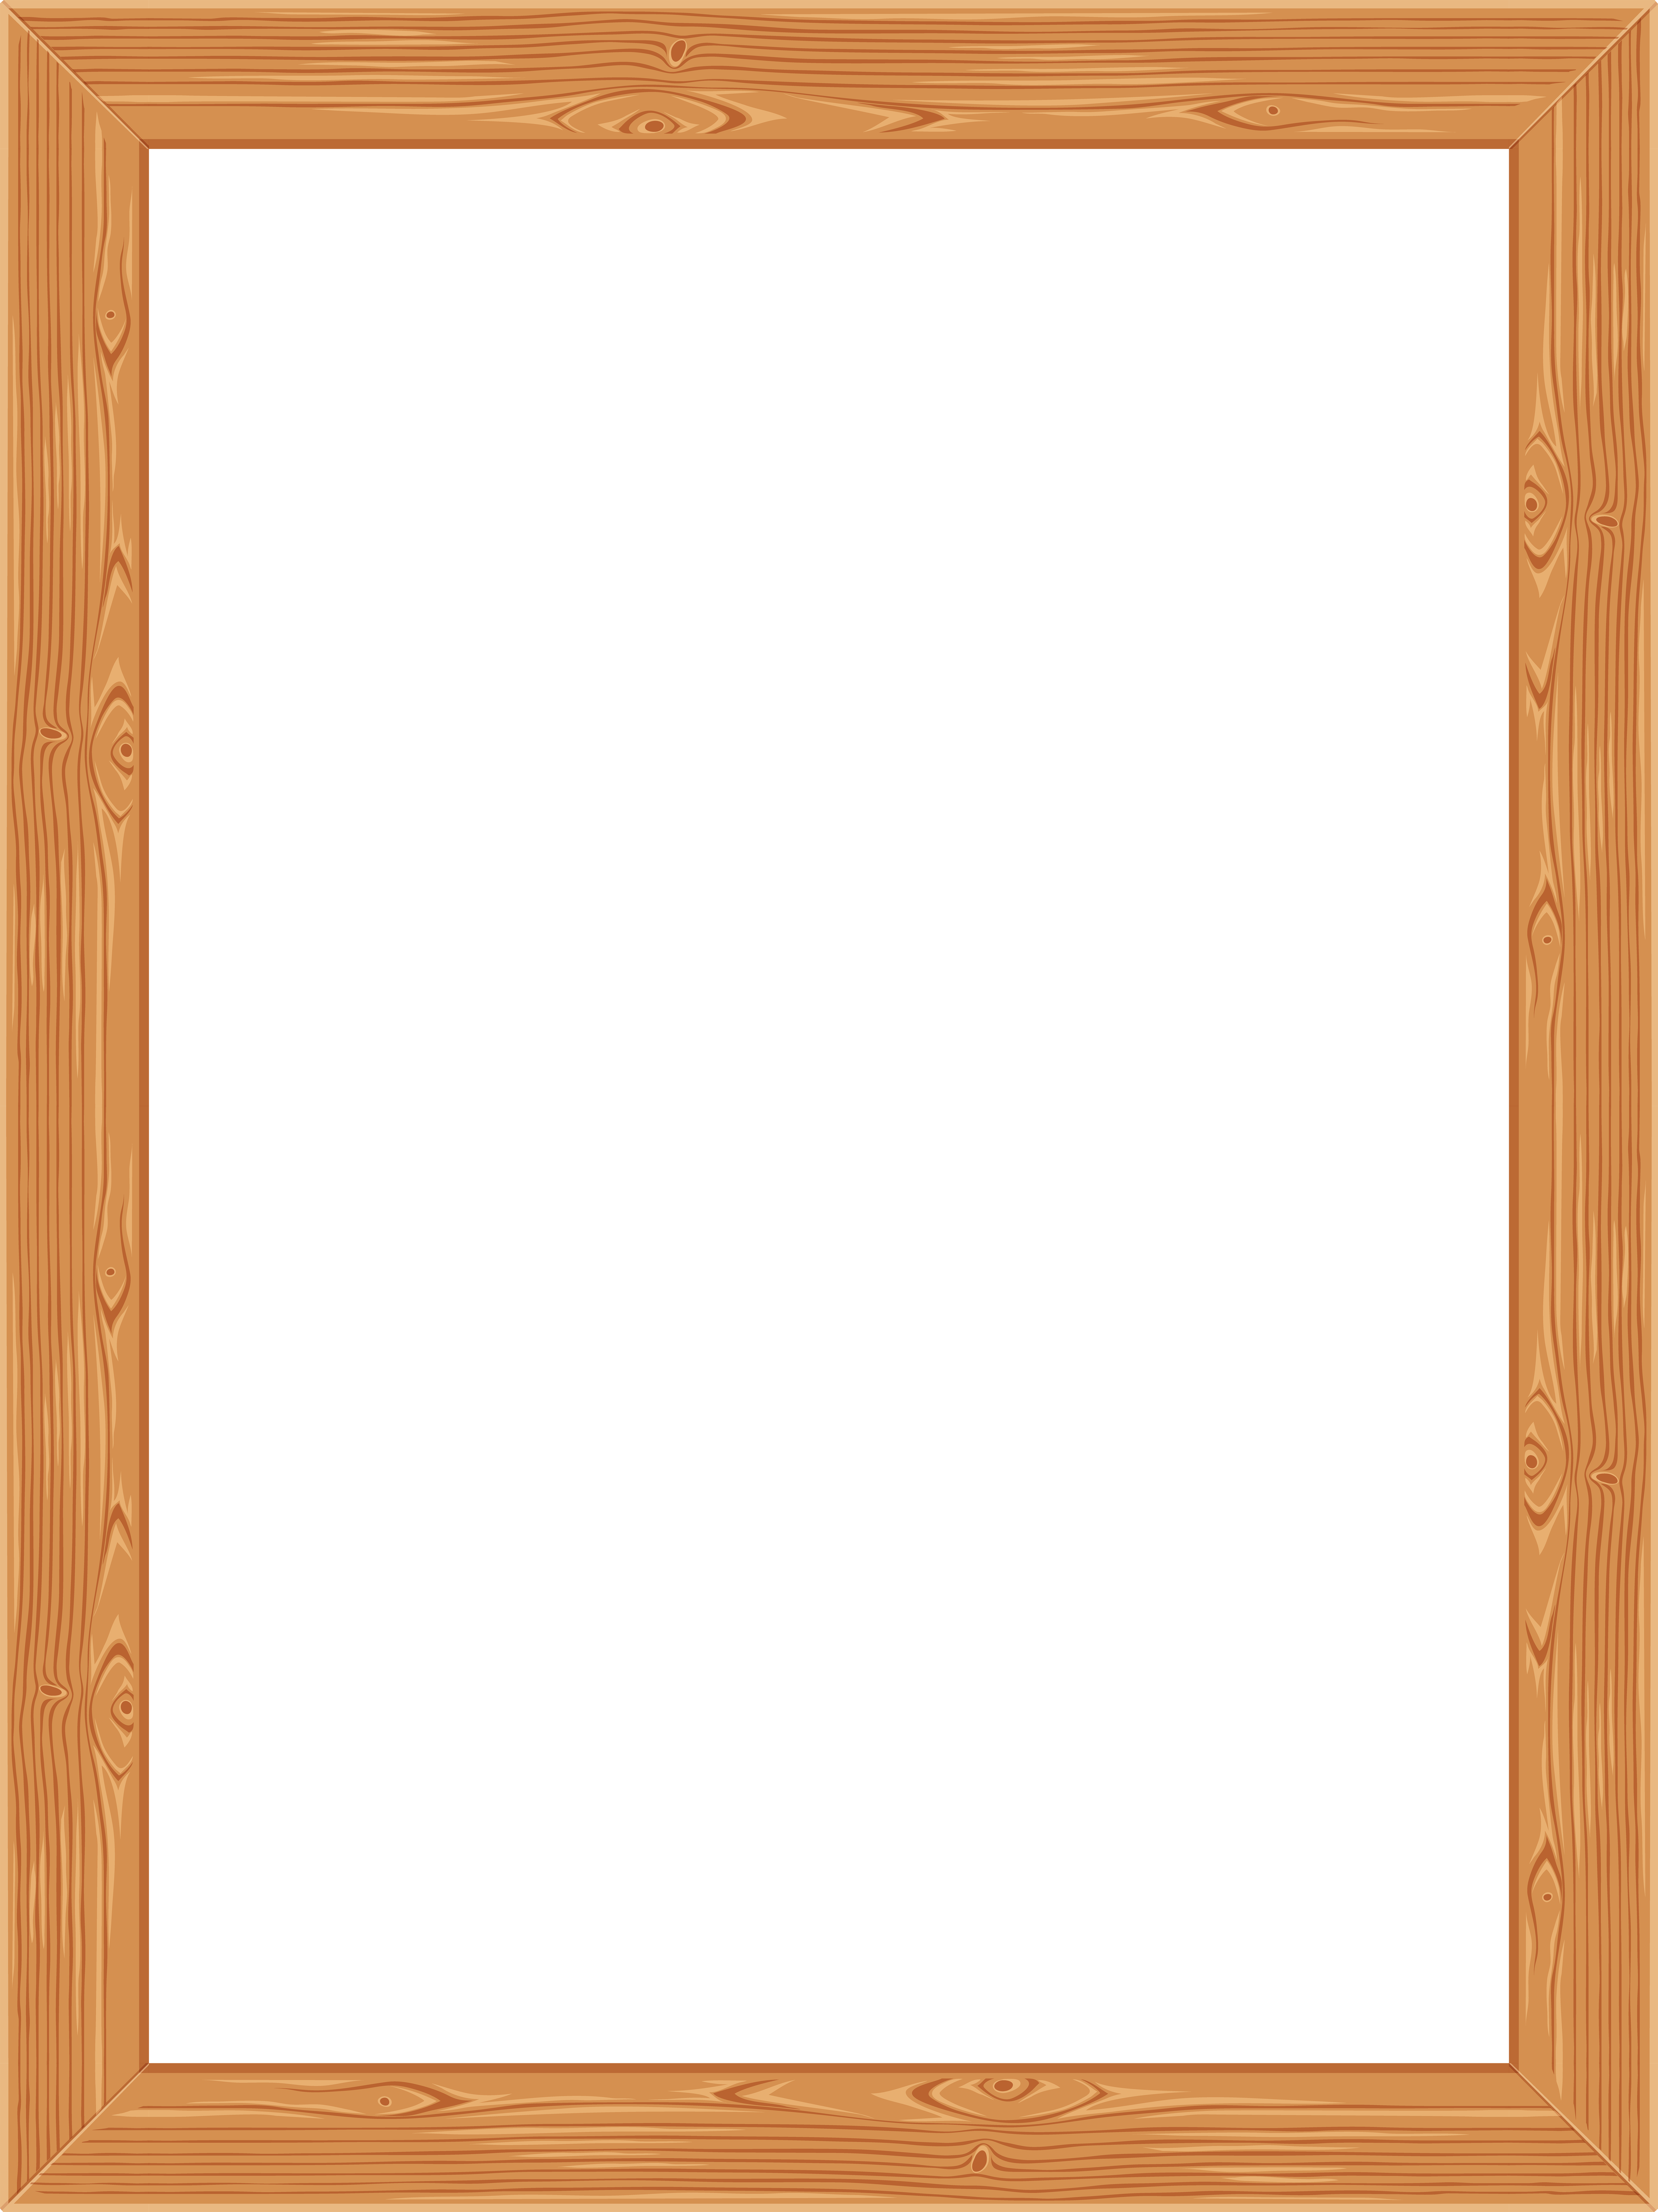 transparent classic wooden frame png image